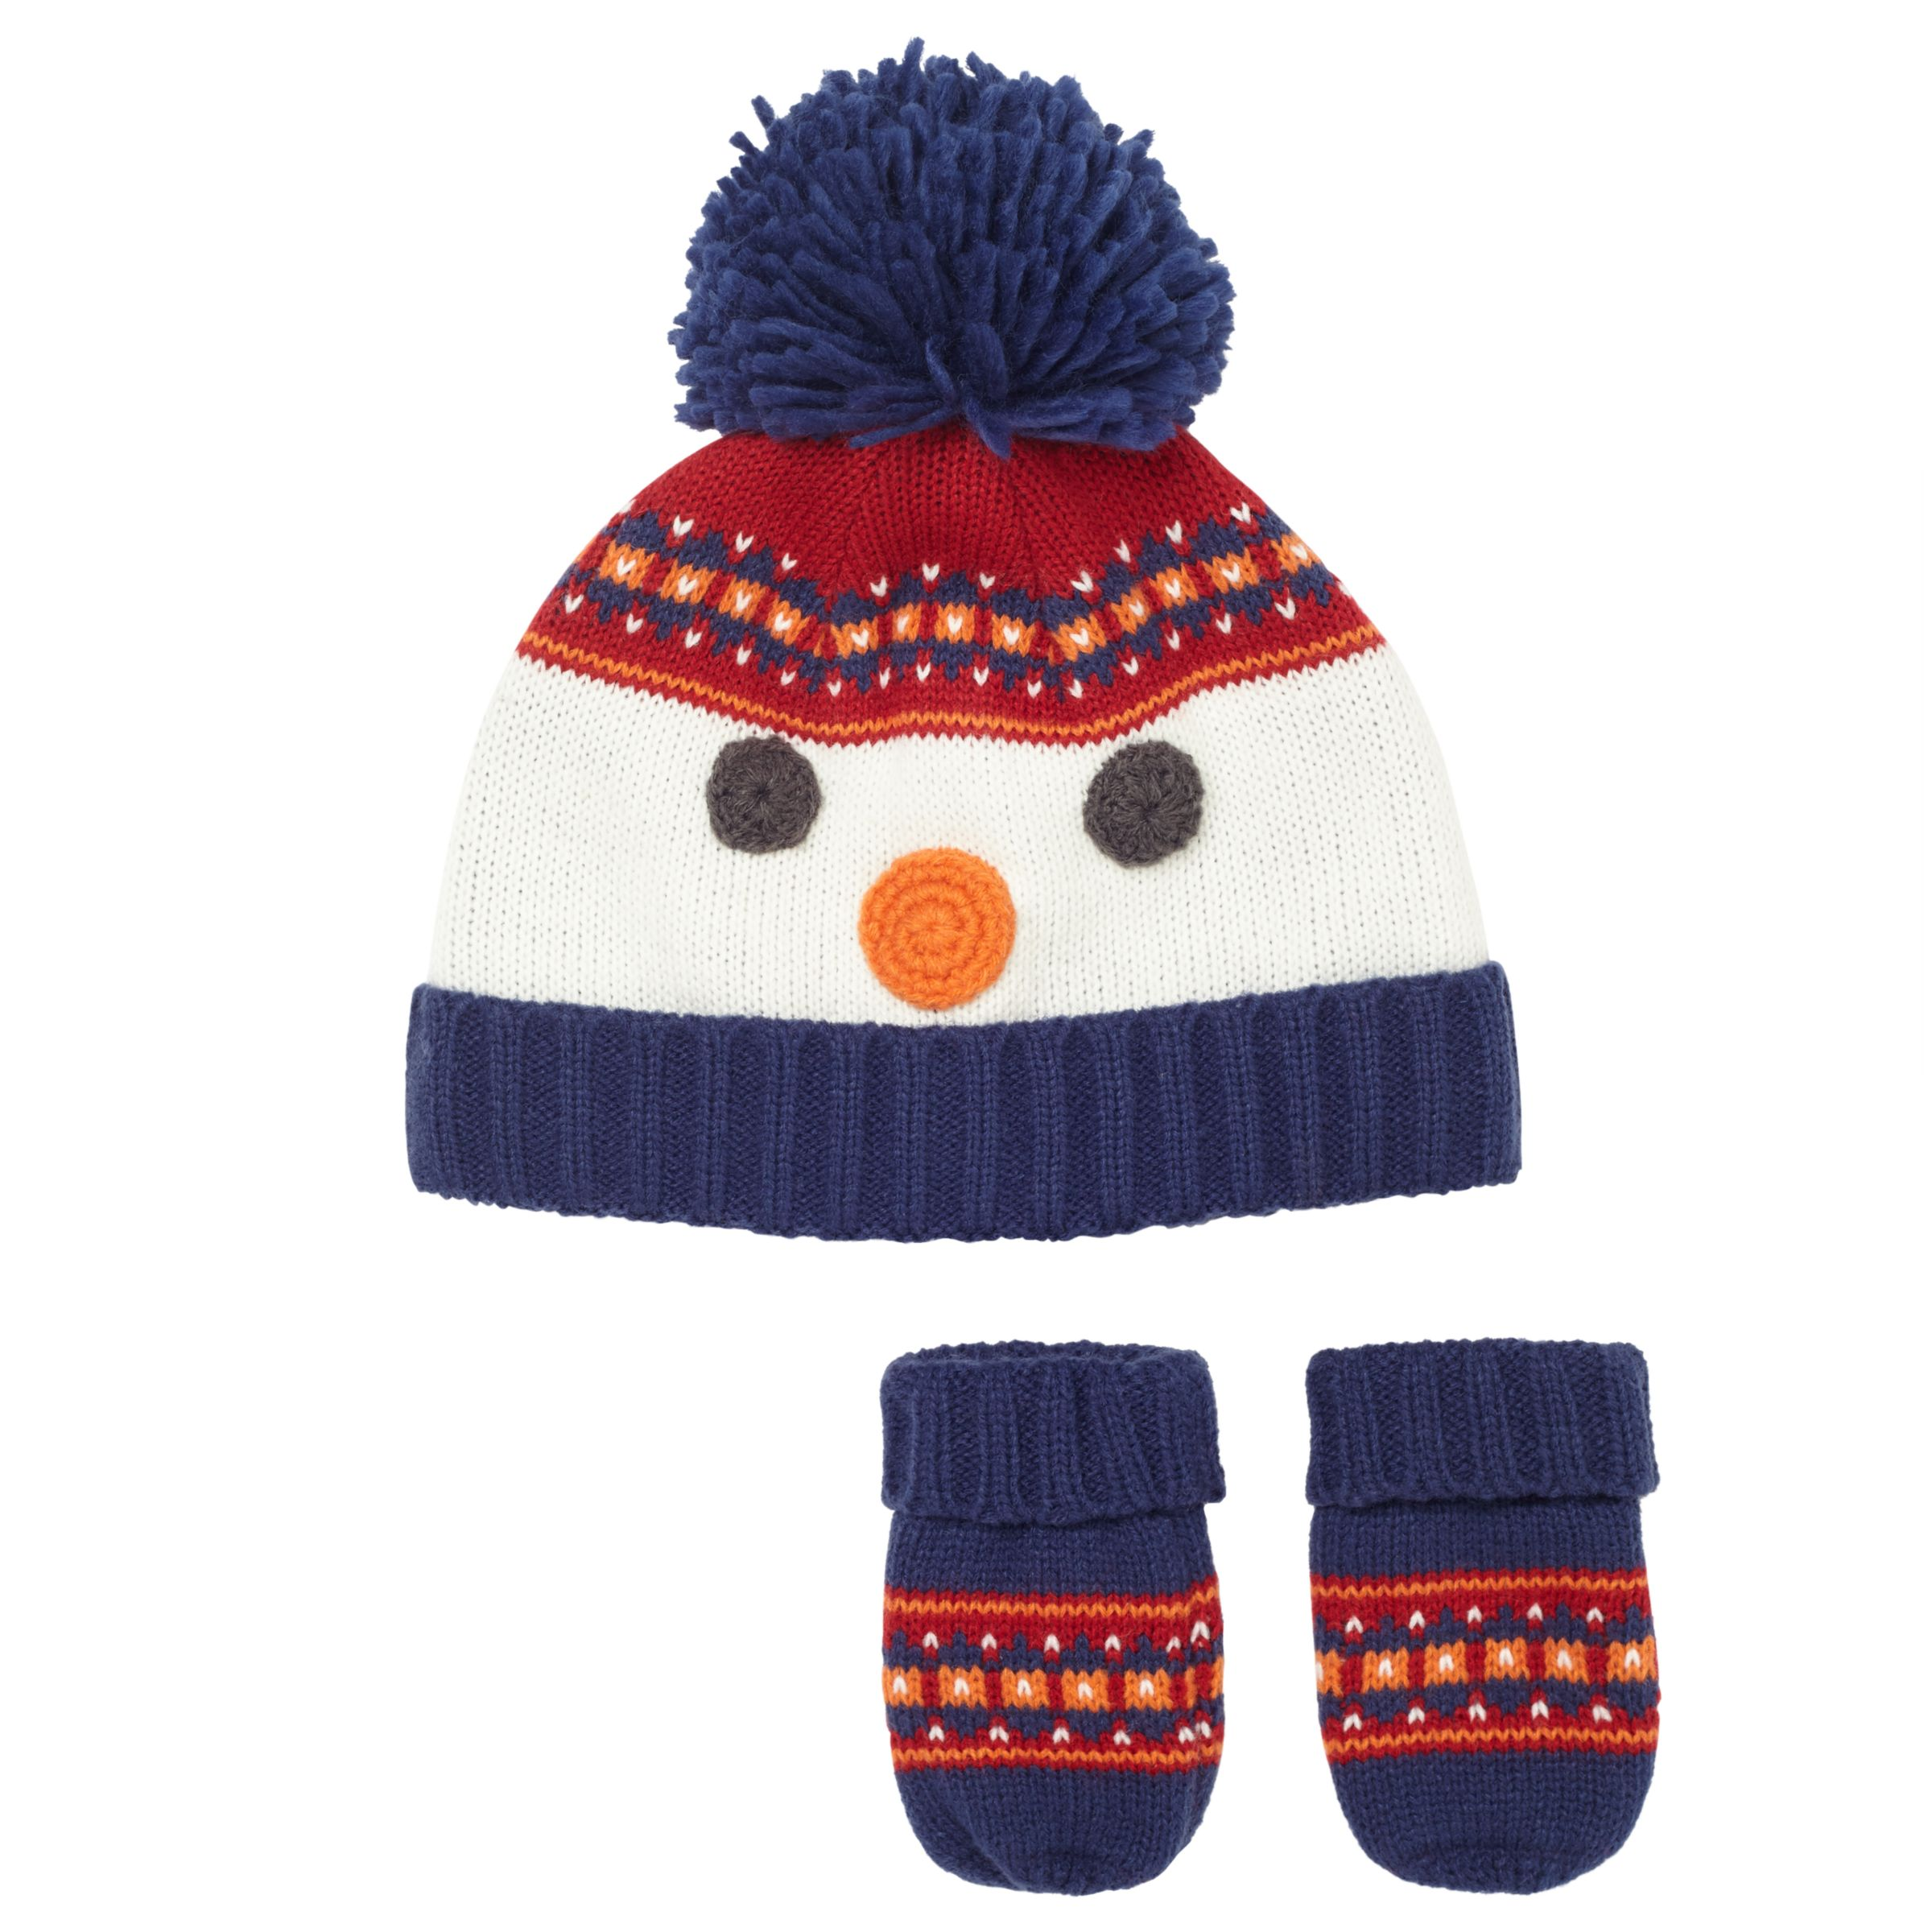 John Lewis Snowman Knitting Pattern : Baby & Toddler Accessories John Lewis